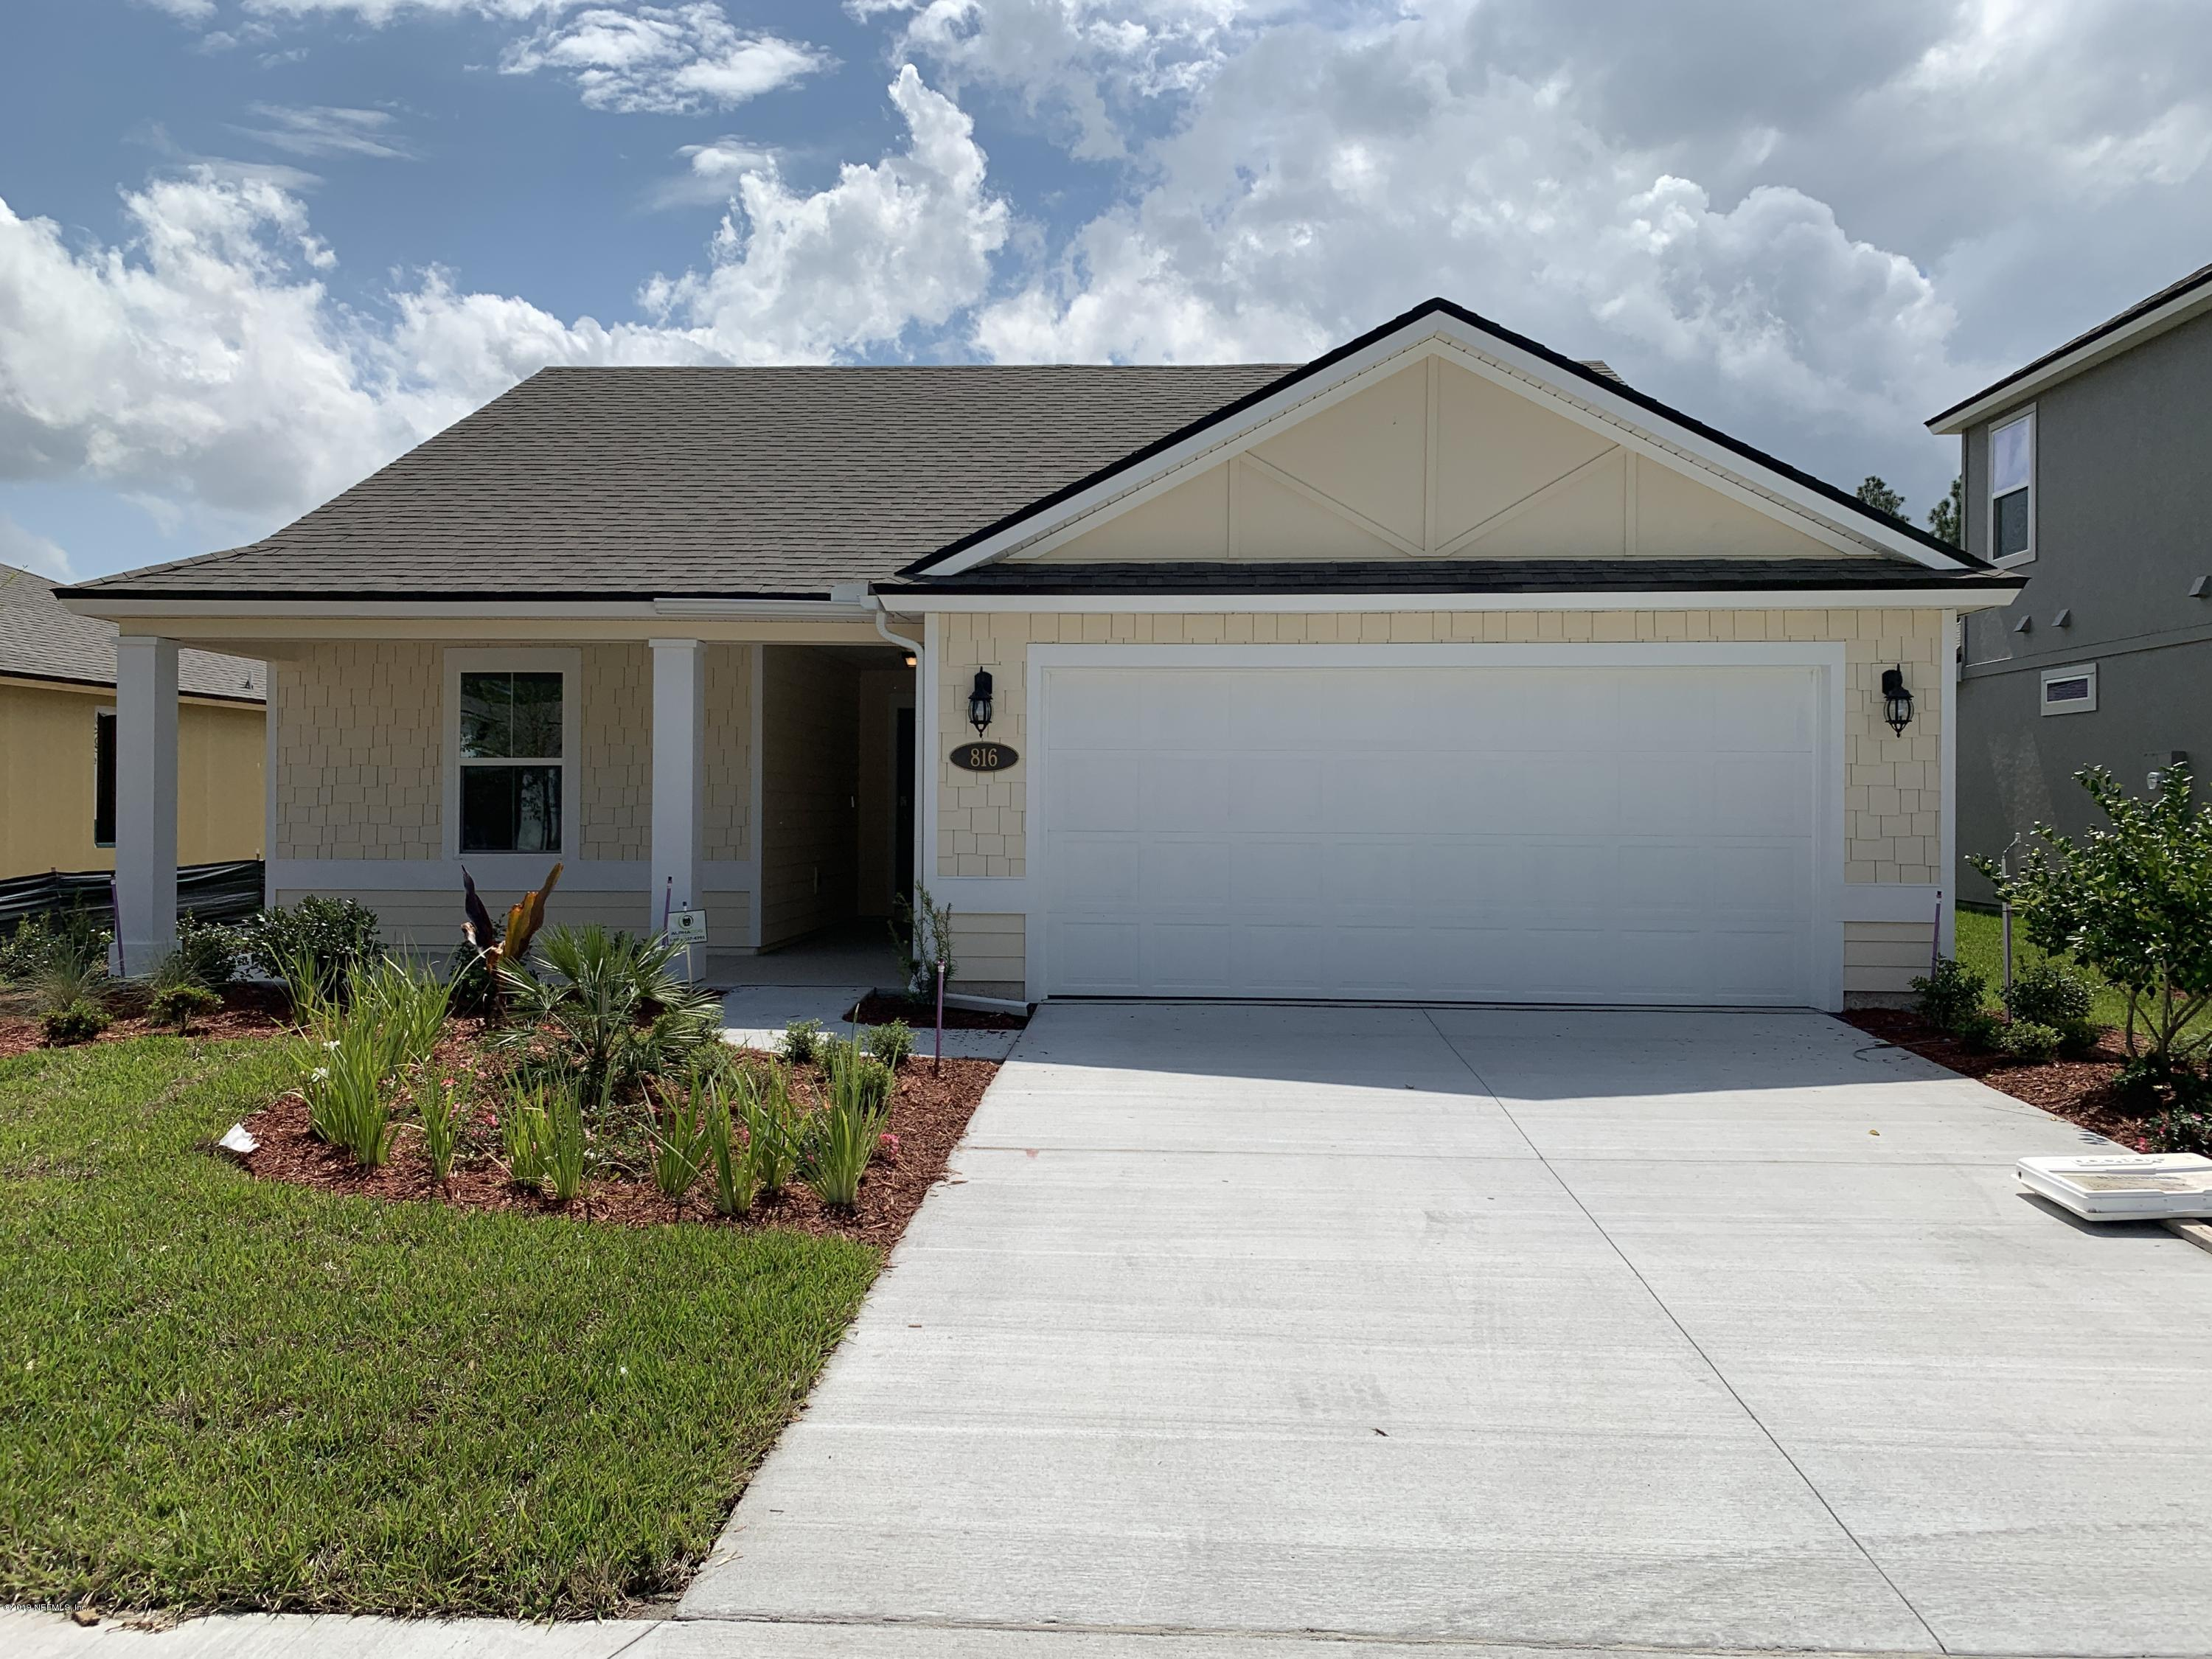 Photo of 816 SHETLAND, ST JOHNS, FL 32259